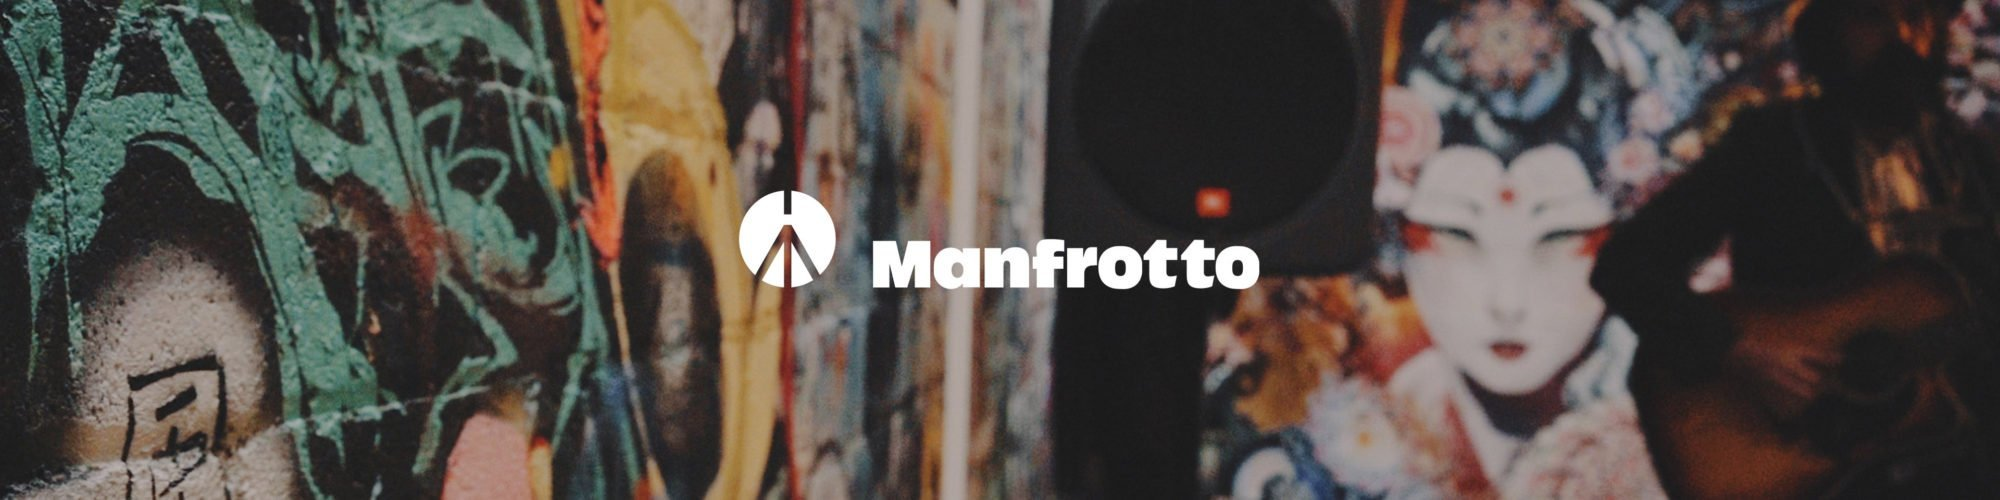 Manfrotto BeFree Live at Blender Lane Artist Market